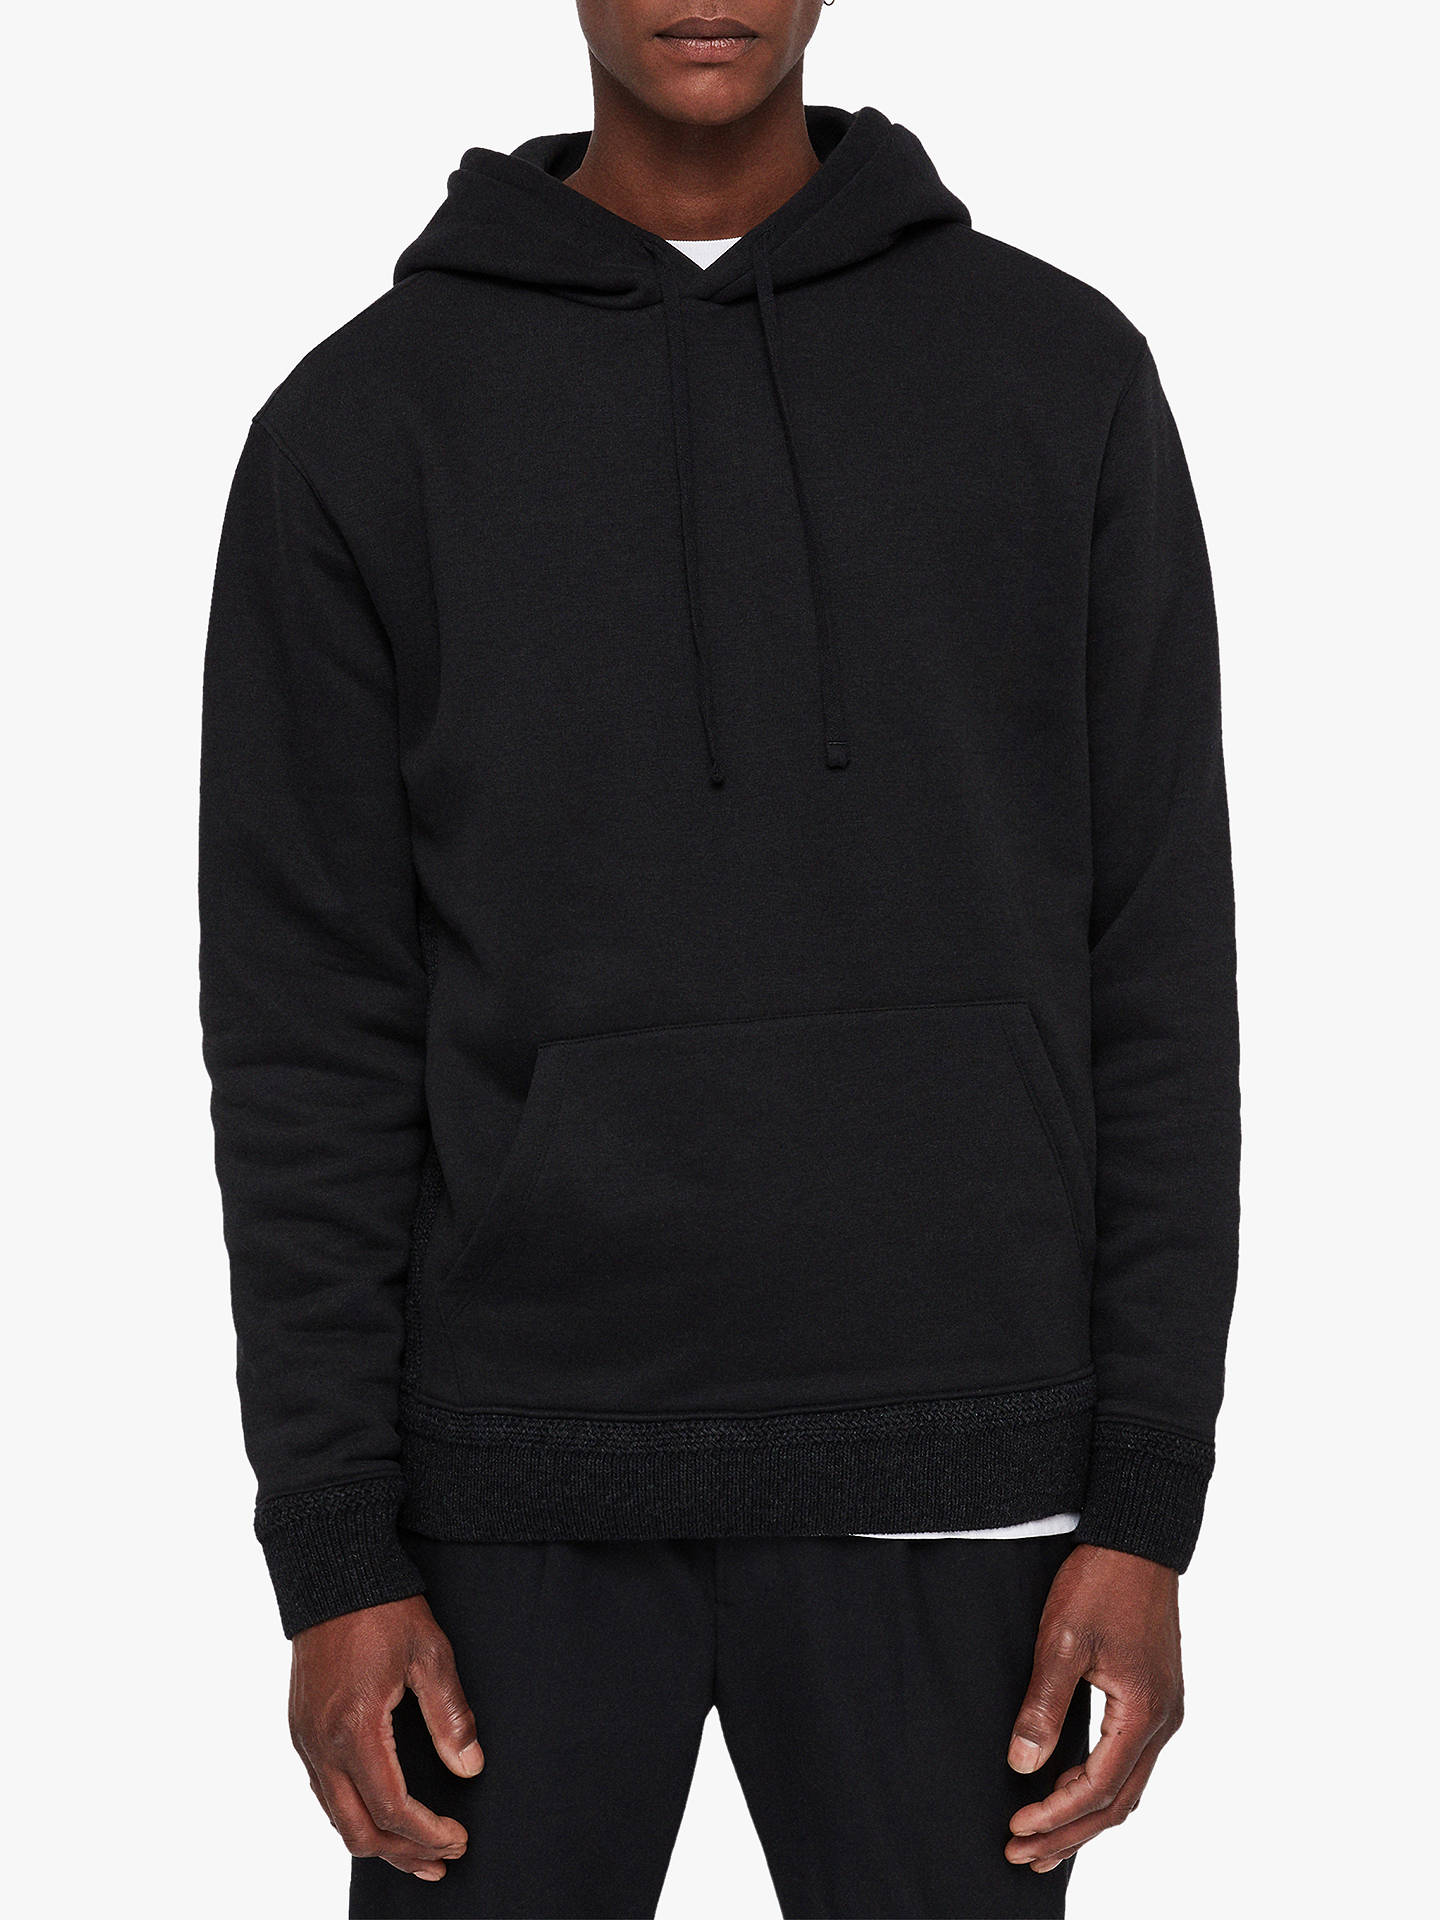 Buy AllSaints Senior Hoodie, Black, M Online at johnlewis.com